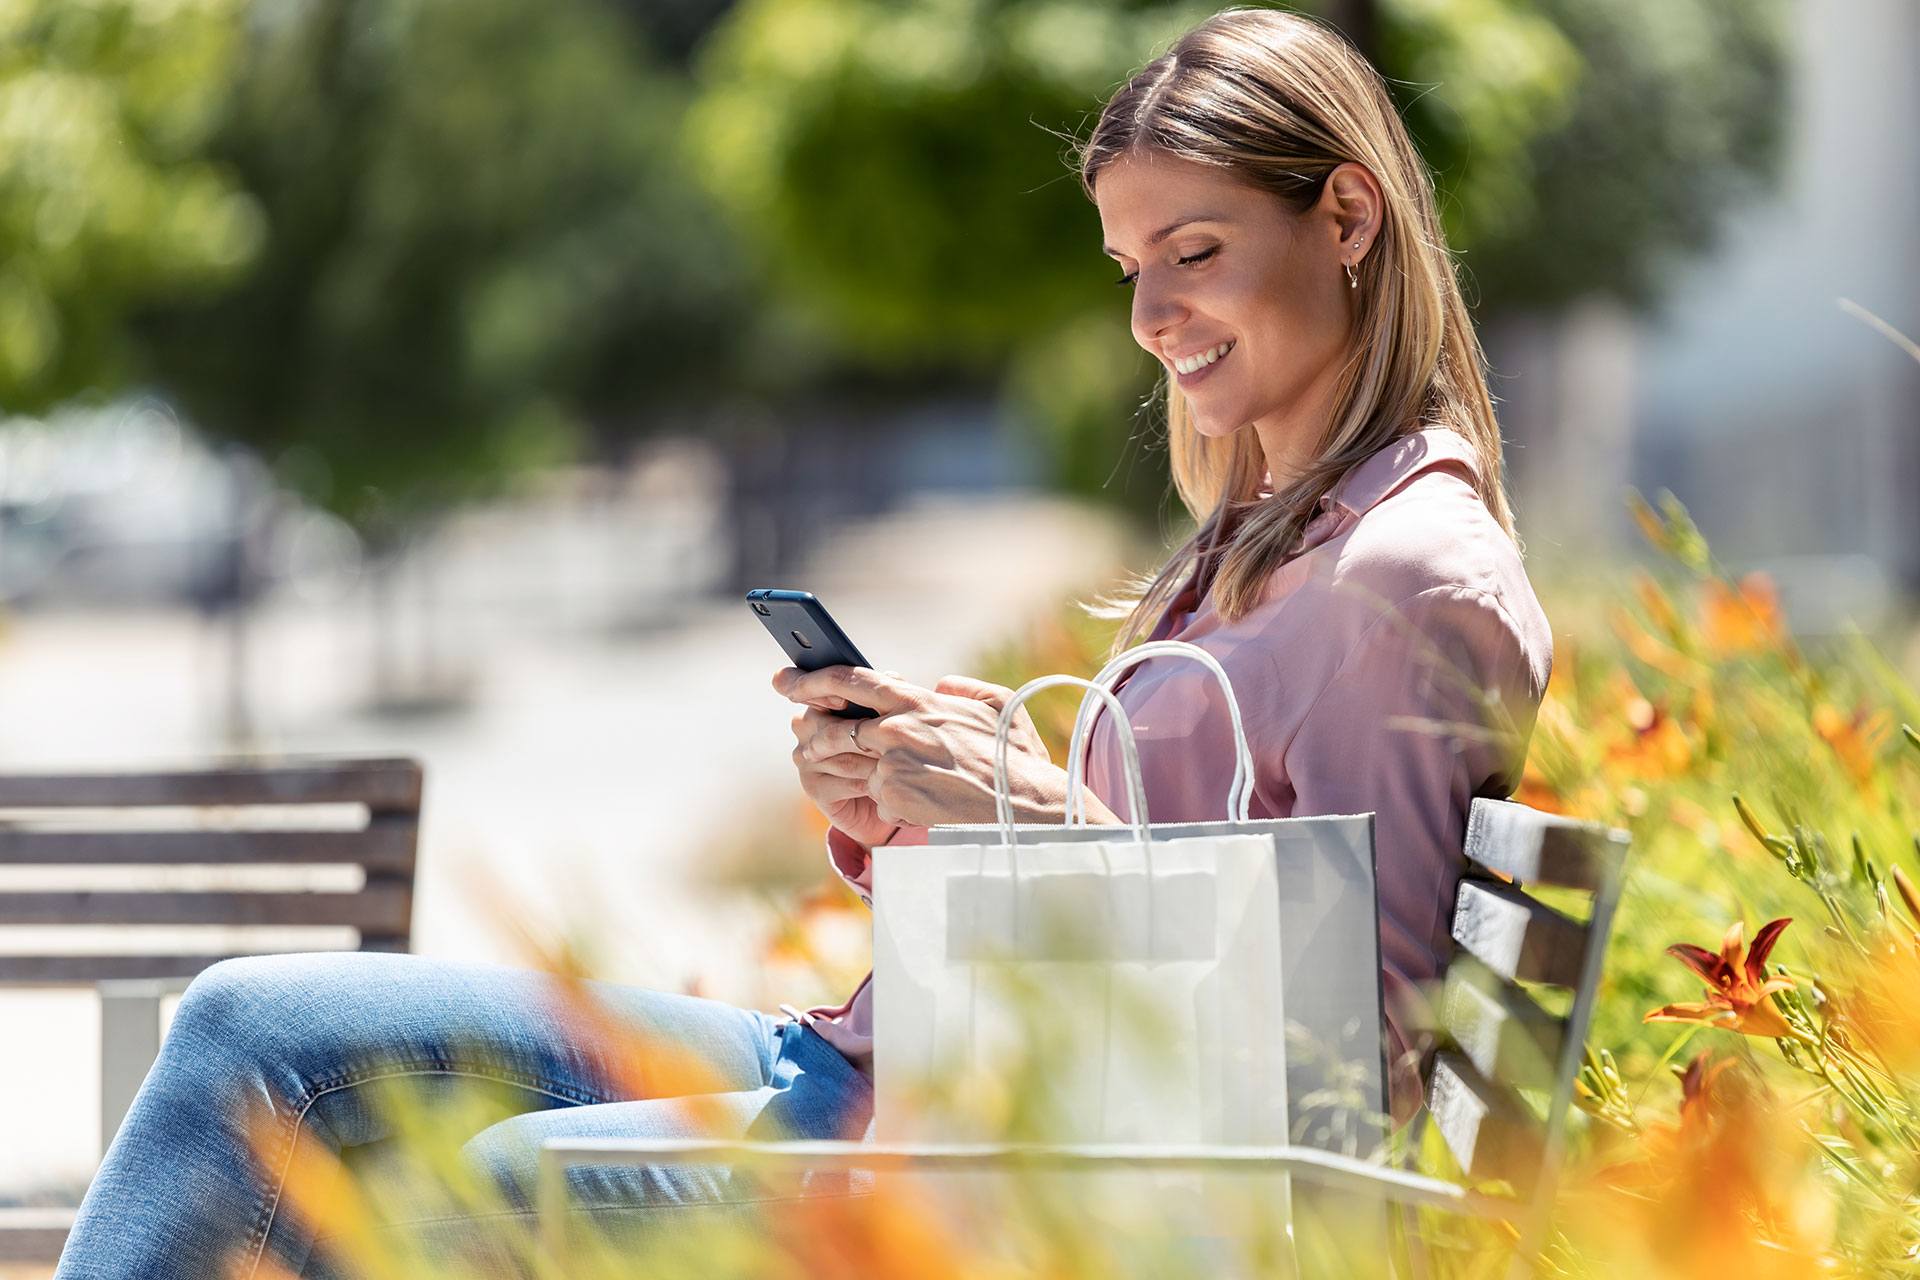 Beautiful woman sitting on a park bench with a shopping bag, using her mobile phone.